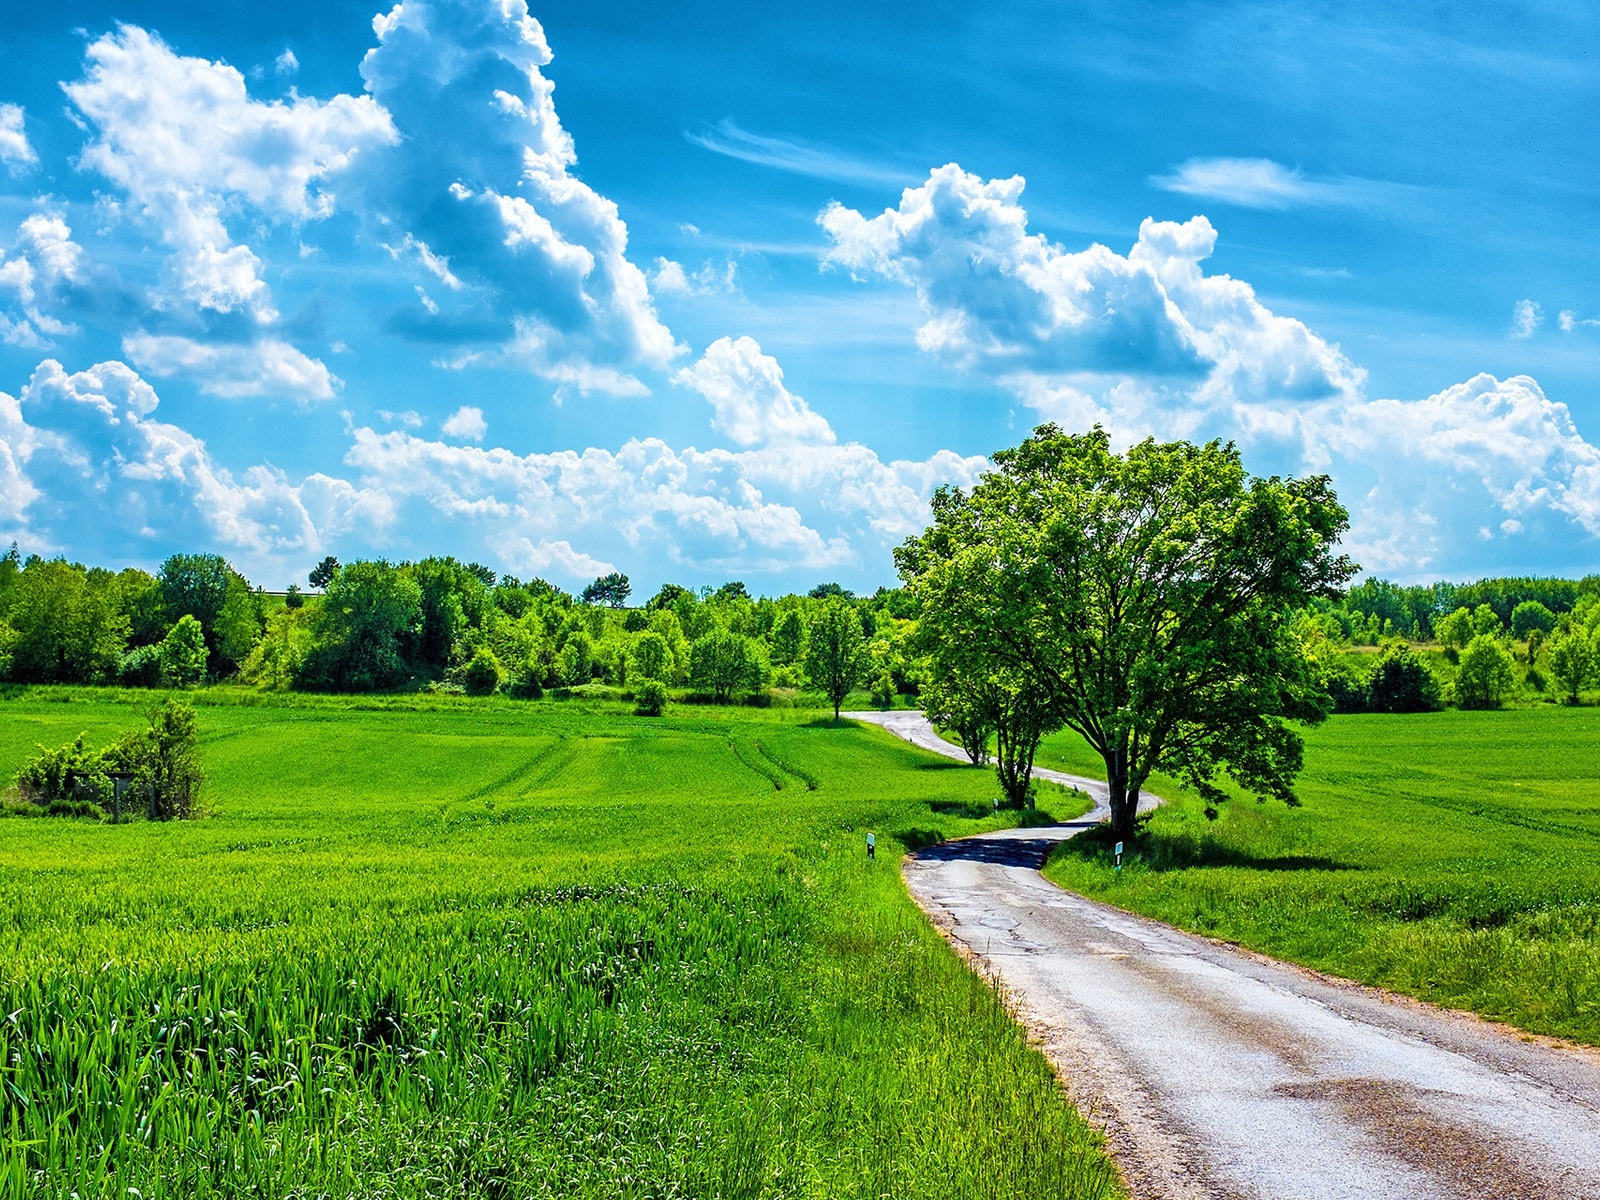 1600x1200 Grass Fields Road Trees Clouds Desktop Pc And